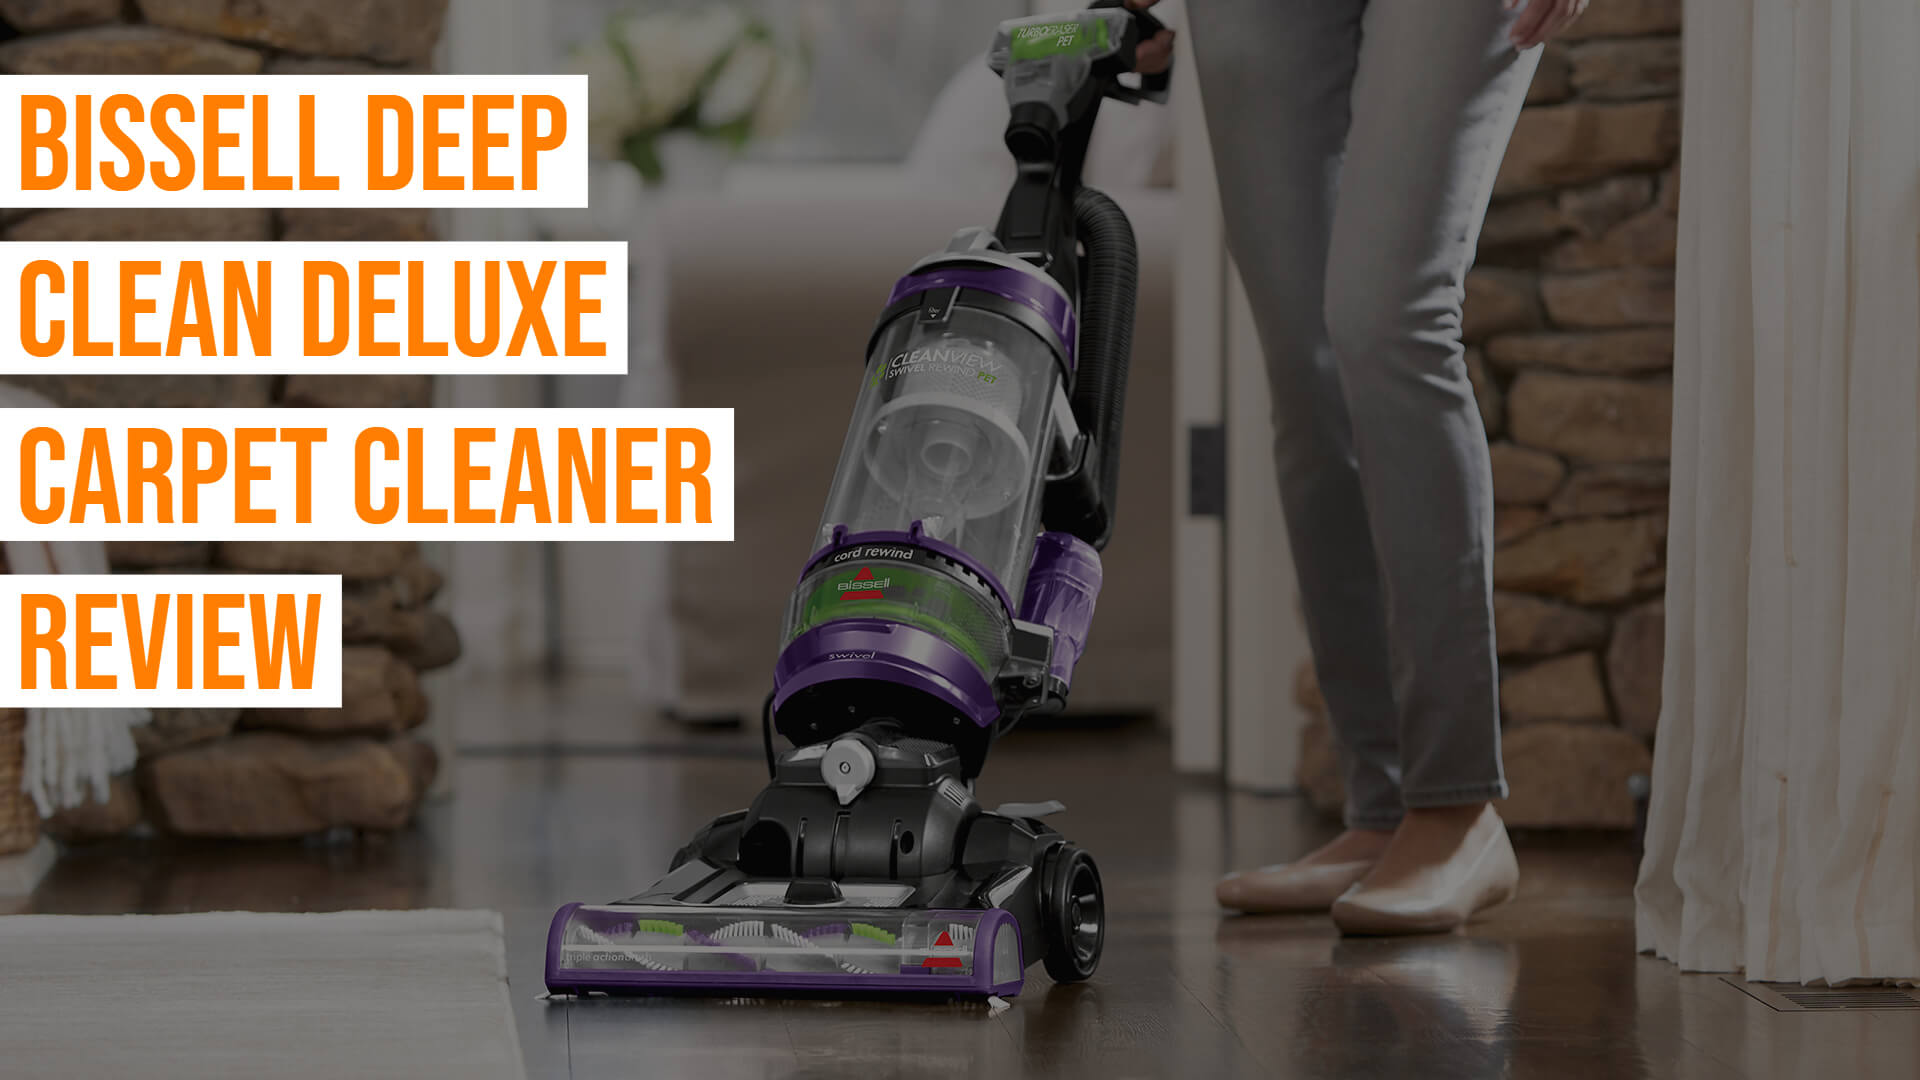 Best Bissell Carpet Cleaners Reviews